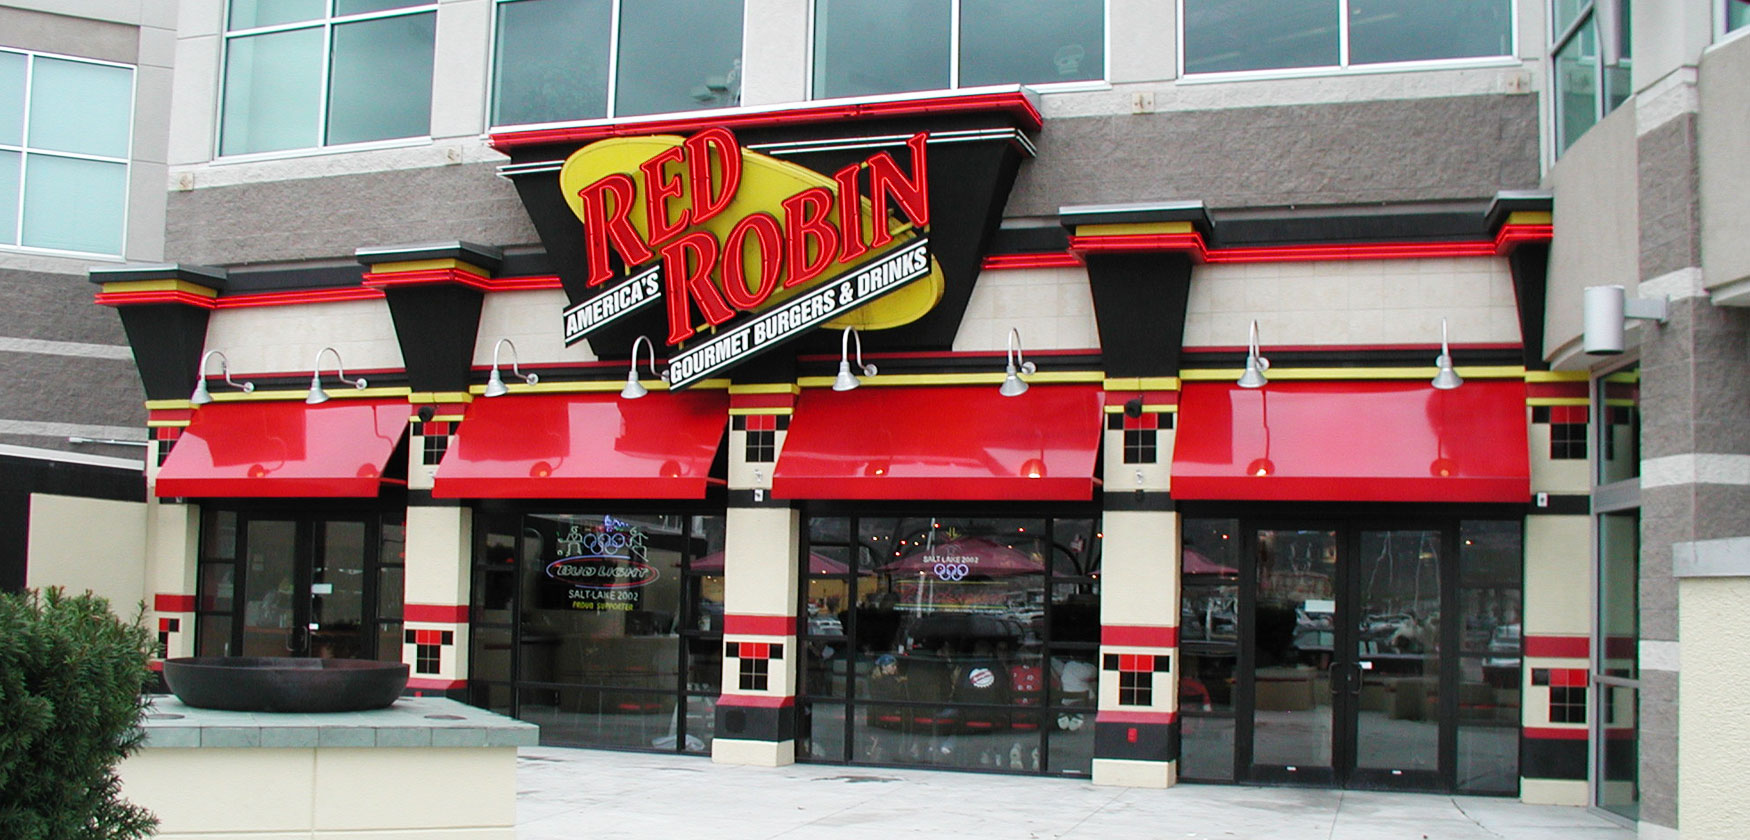 red robin exterior - restaurant construction example